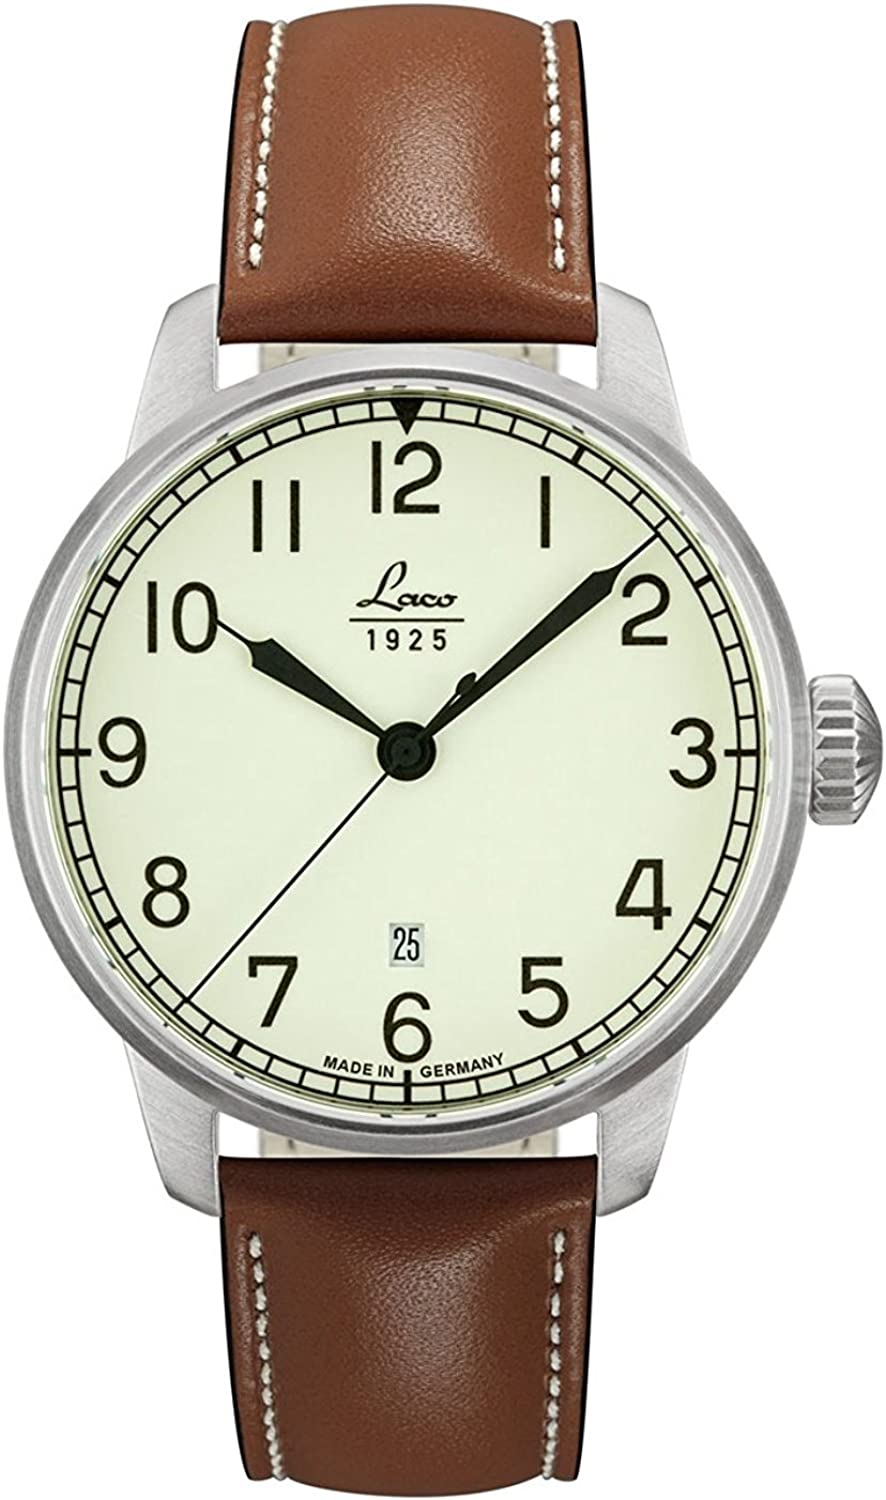 Laco Valencia Automatic Luminous Dial Watch with Sapphire Crystal 861651